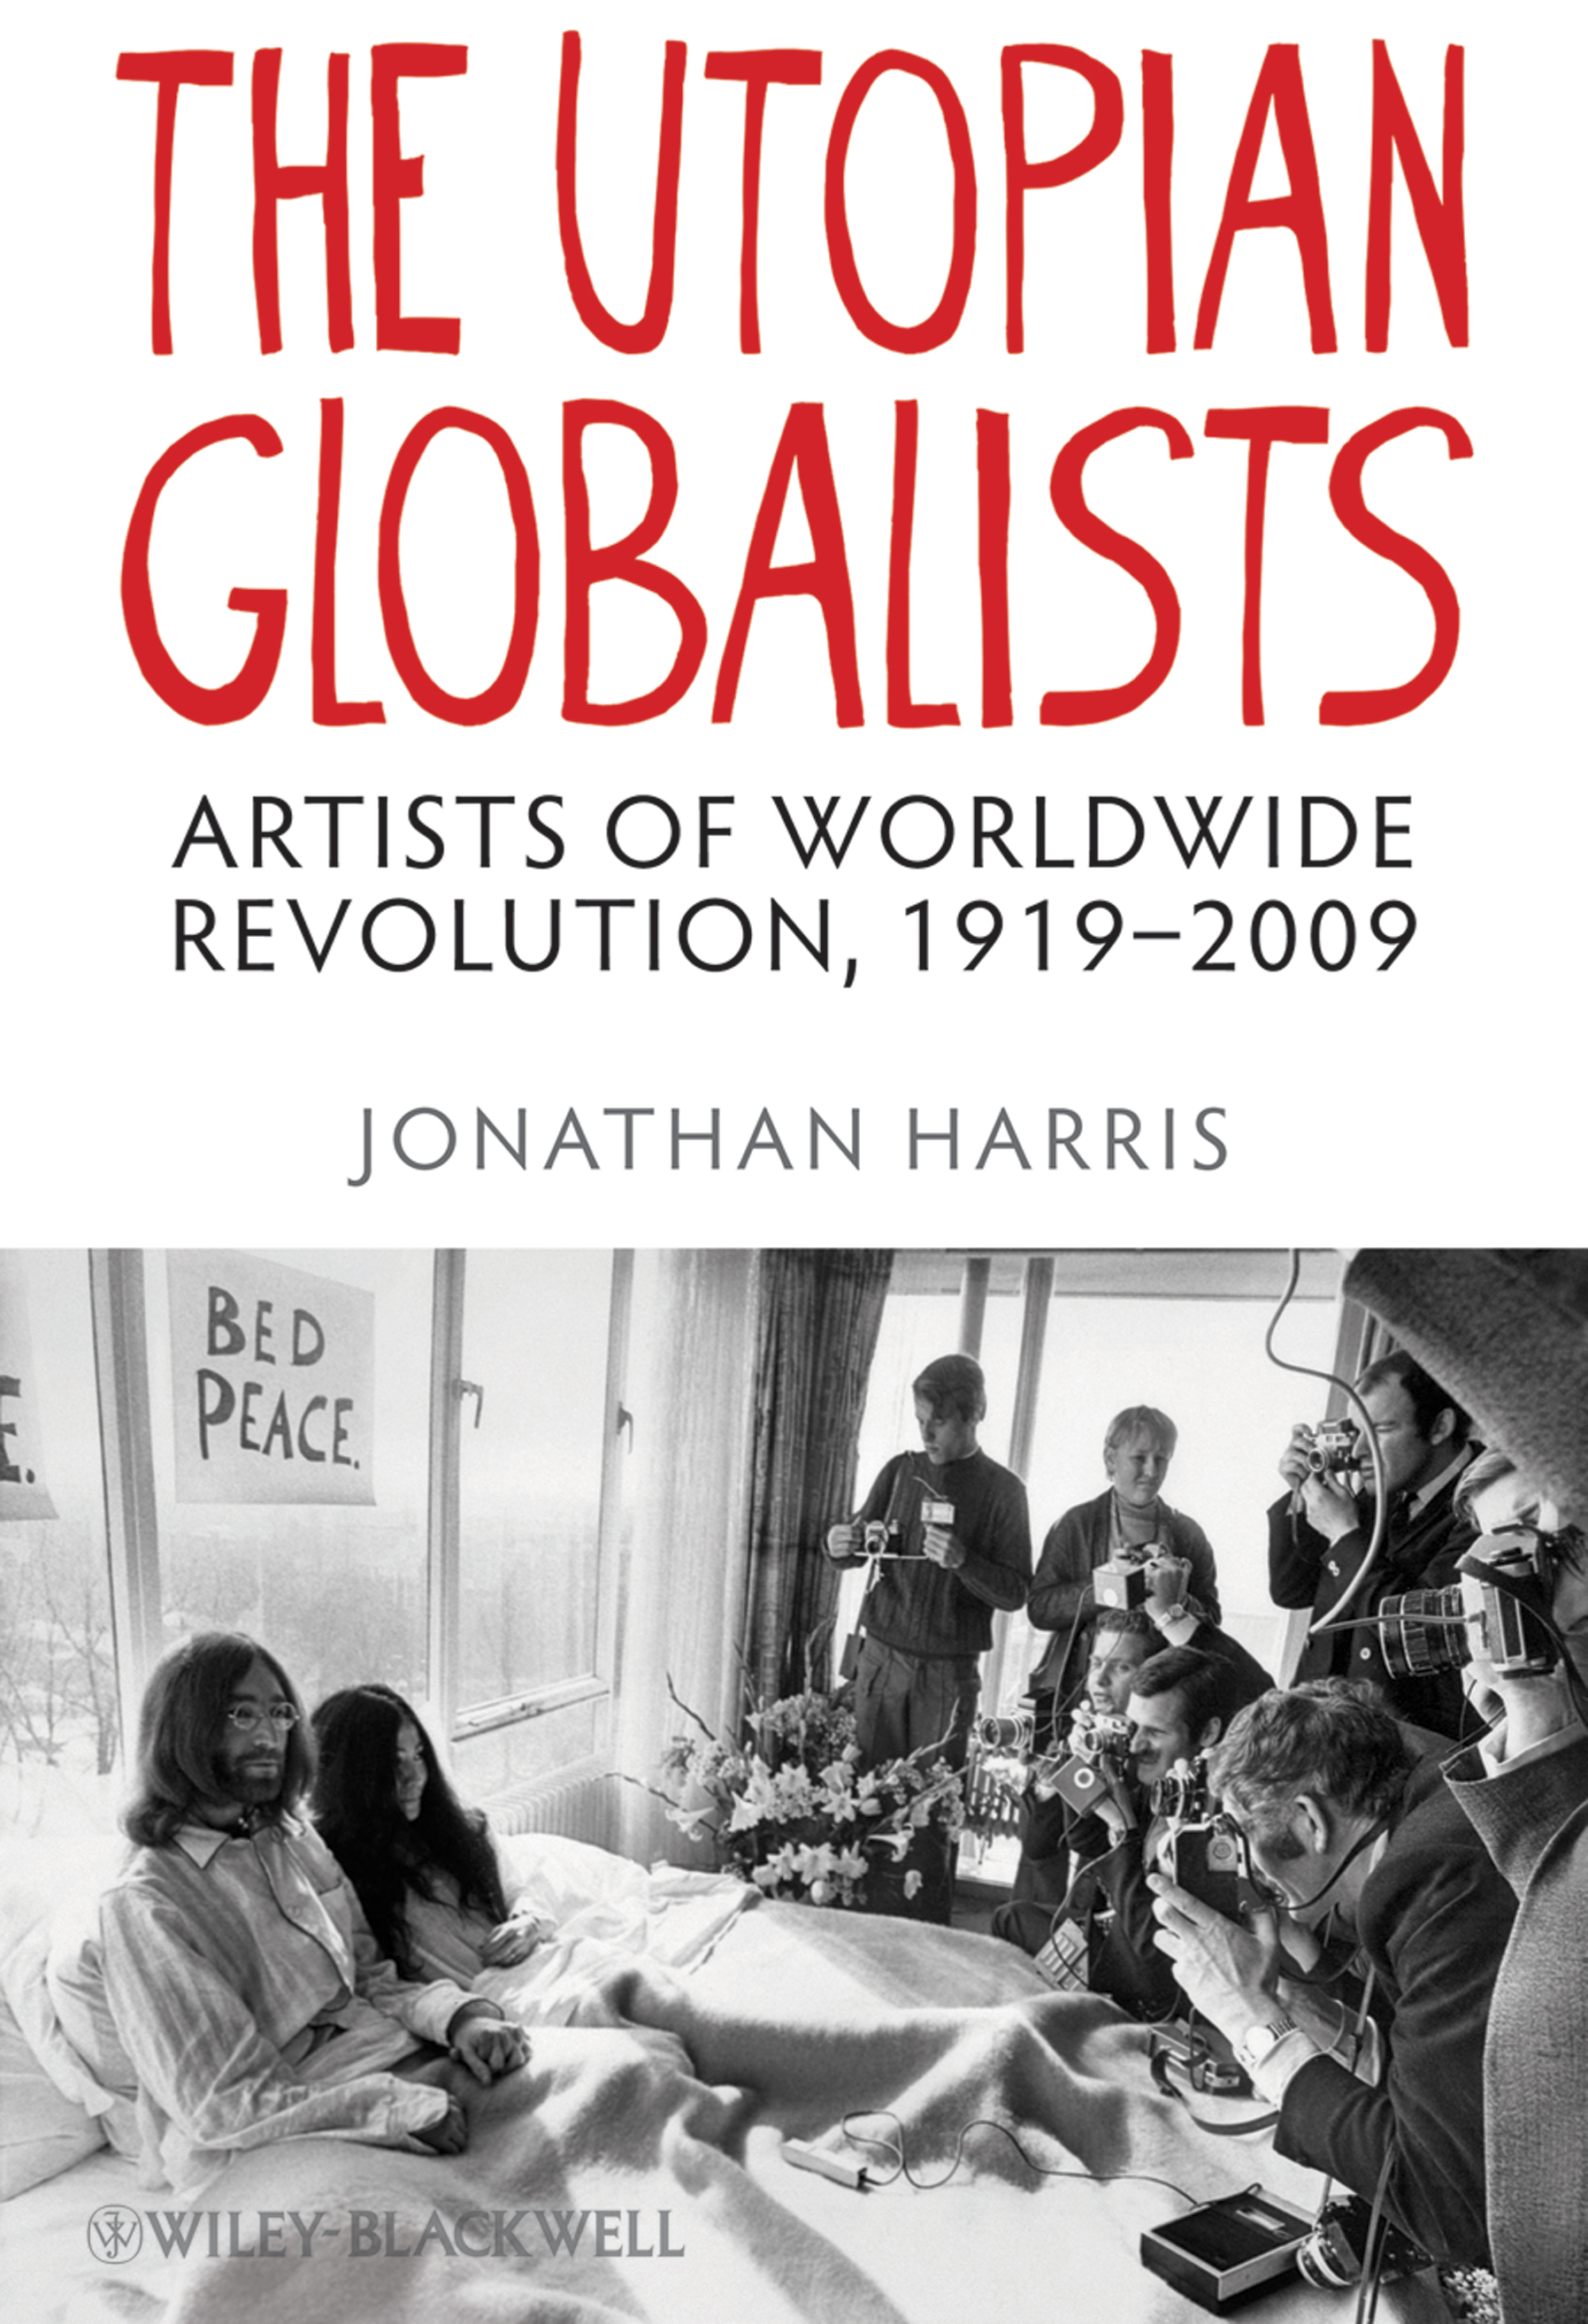 Jonathan Harris The Utopian Globalists. Artists of Worldwide Revolution, 1919 - 2009 cd various artists the legacy of electronic funk